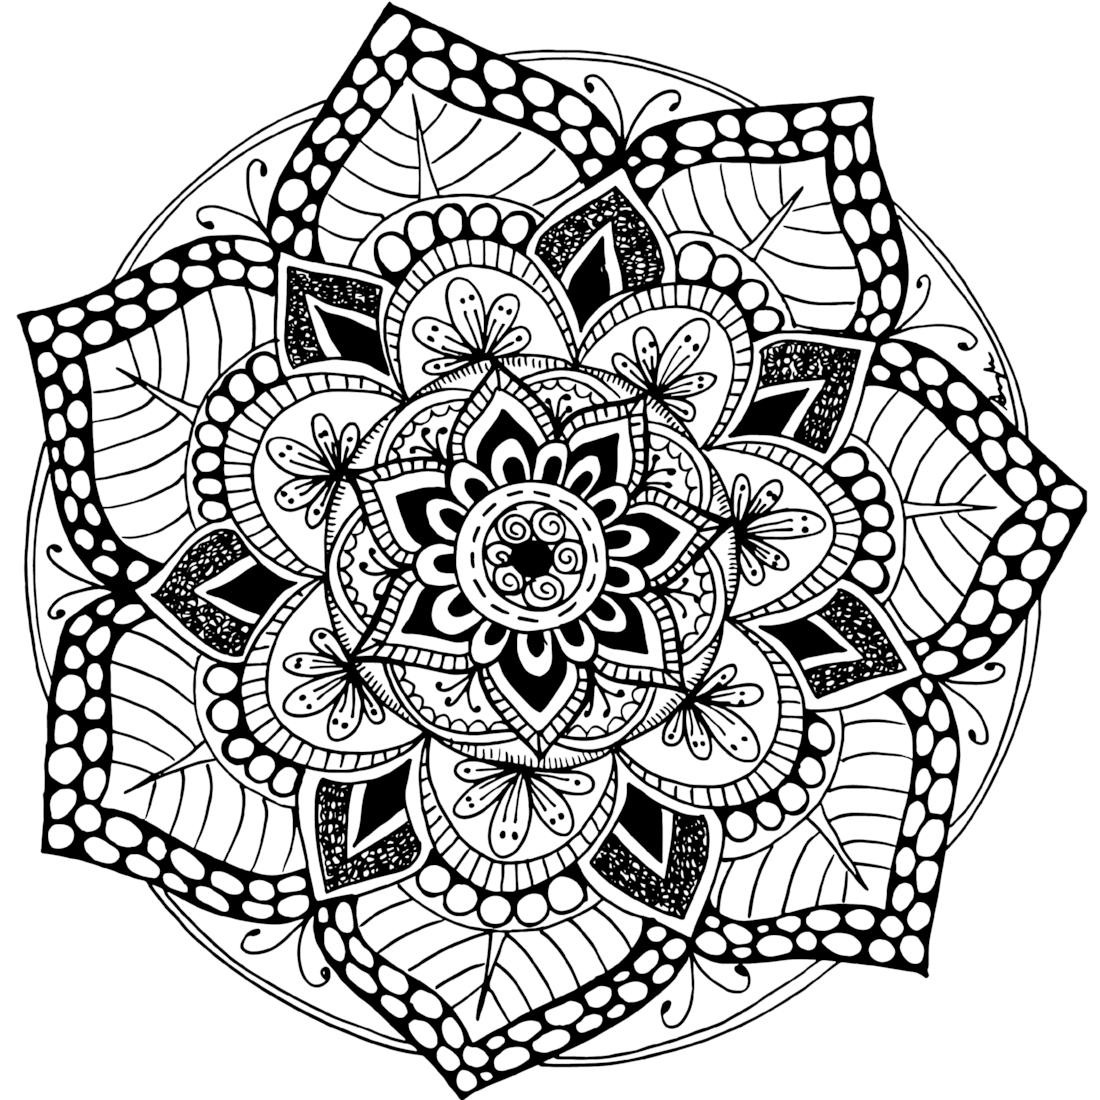 detailed mandala coloring pages i create coloring mandalas and give them away for free pages coloring detailed mandala